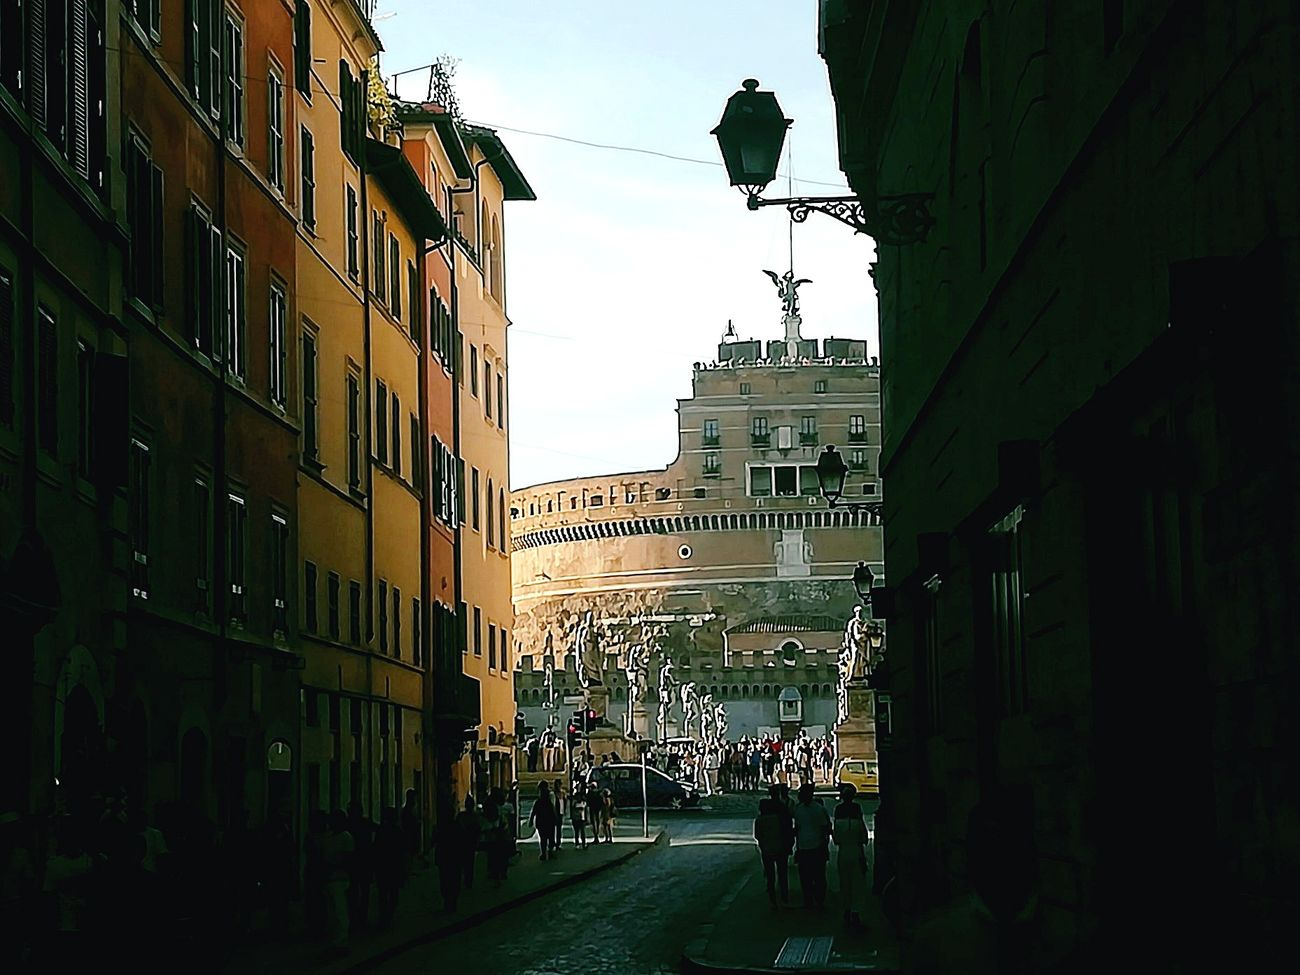 City Architecture Building Exterior Built Structure Police Force Law Cityscape Day Outdoors People Crowd Politics And Government Rome Italy🇮🇹 Rome